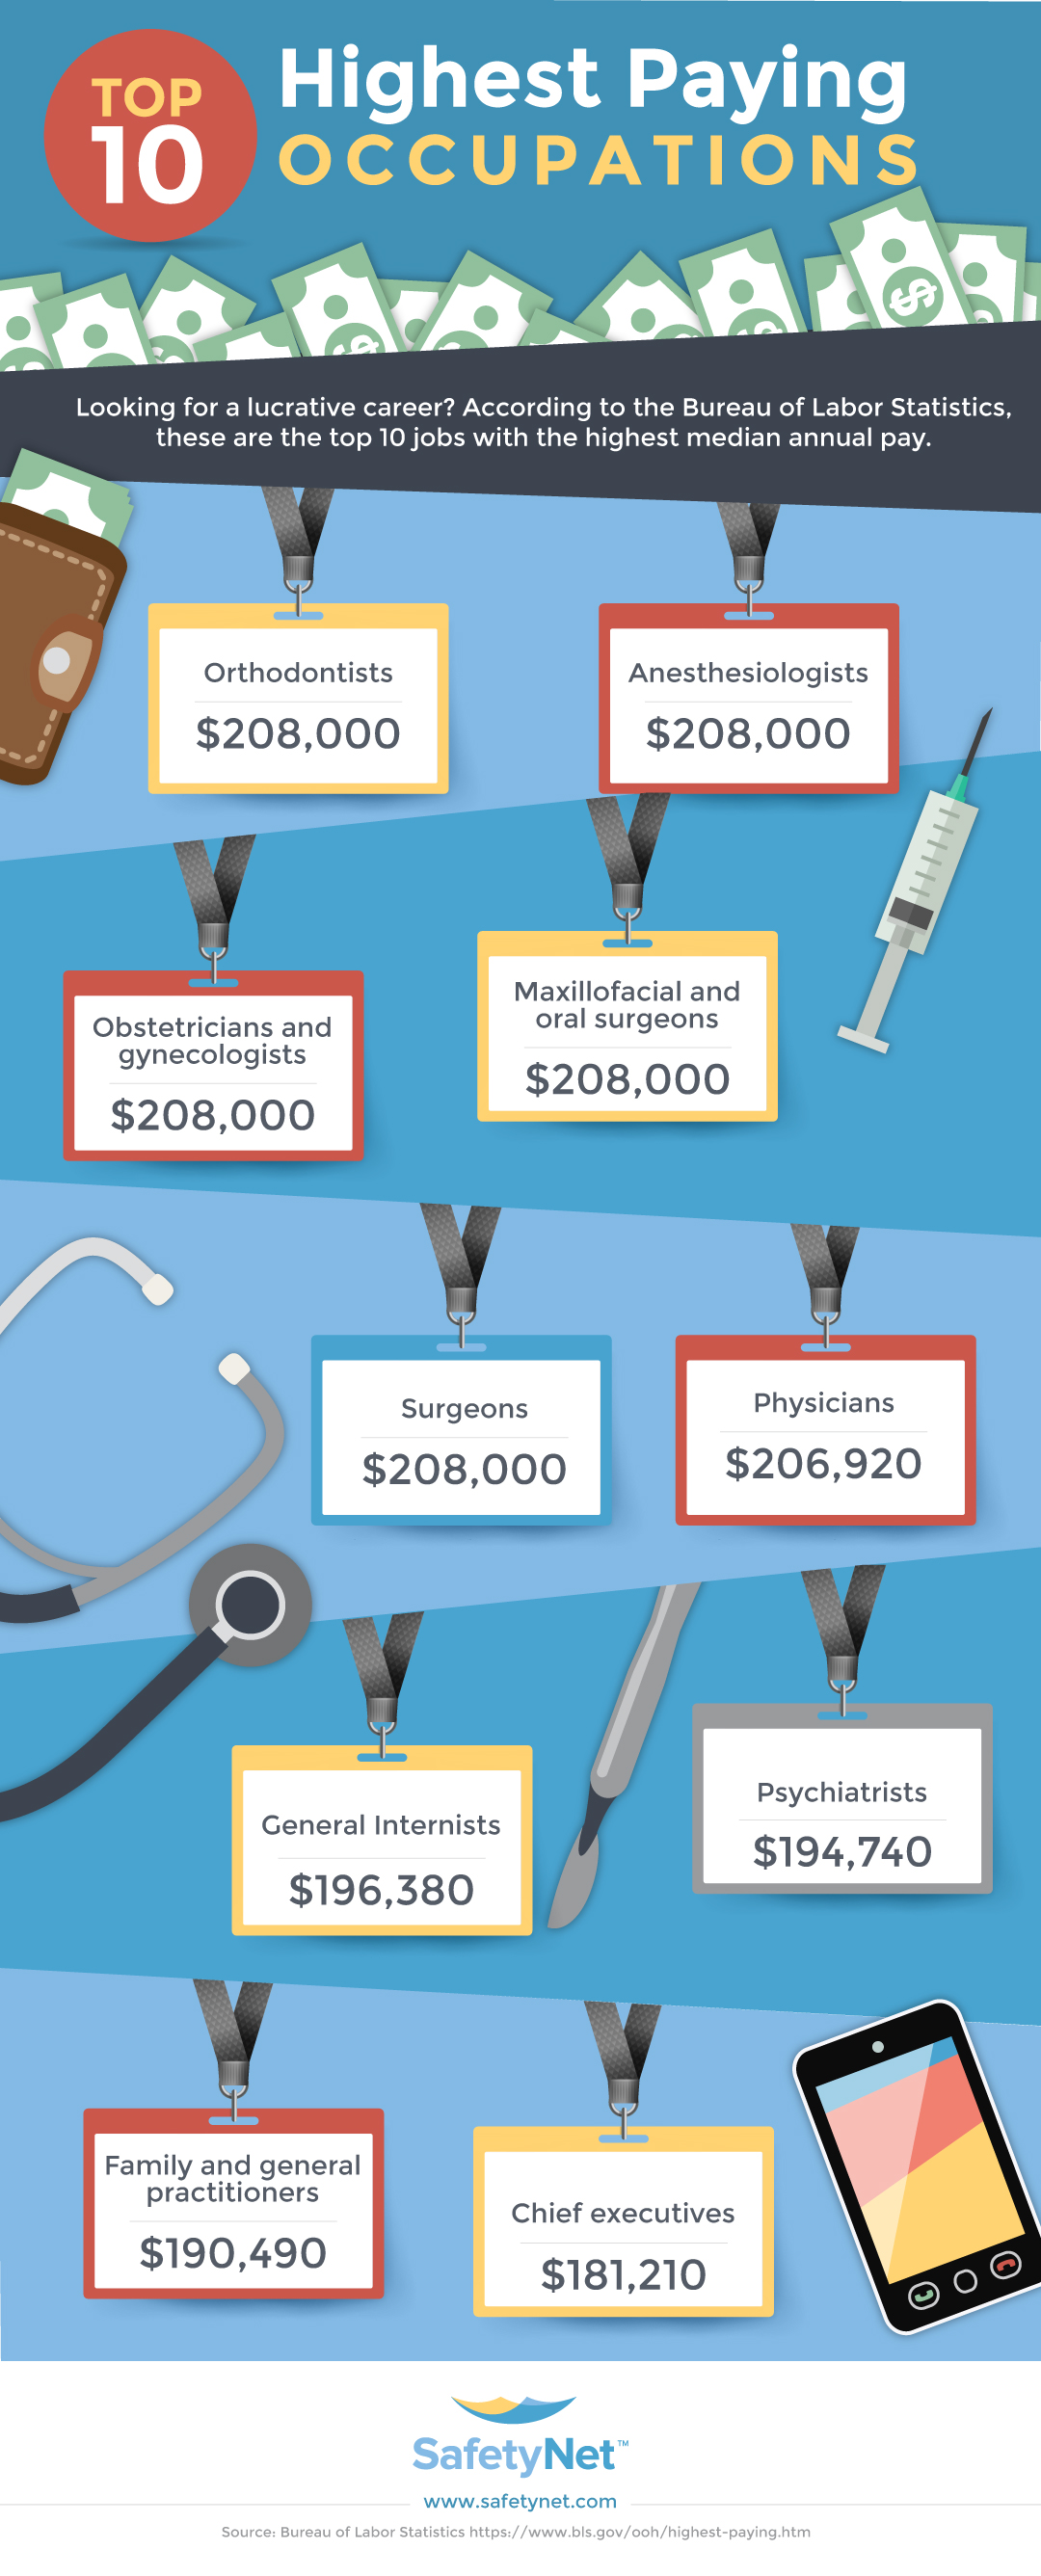 How to Build a Lucrative Career: Top 10 List of Highest Paying Occupations - Infographic